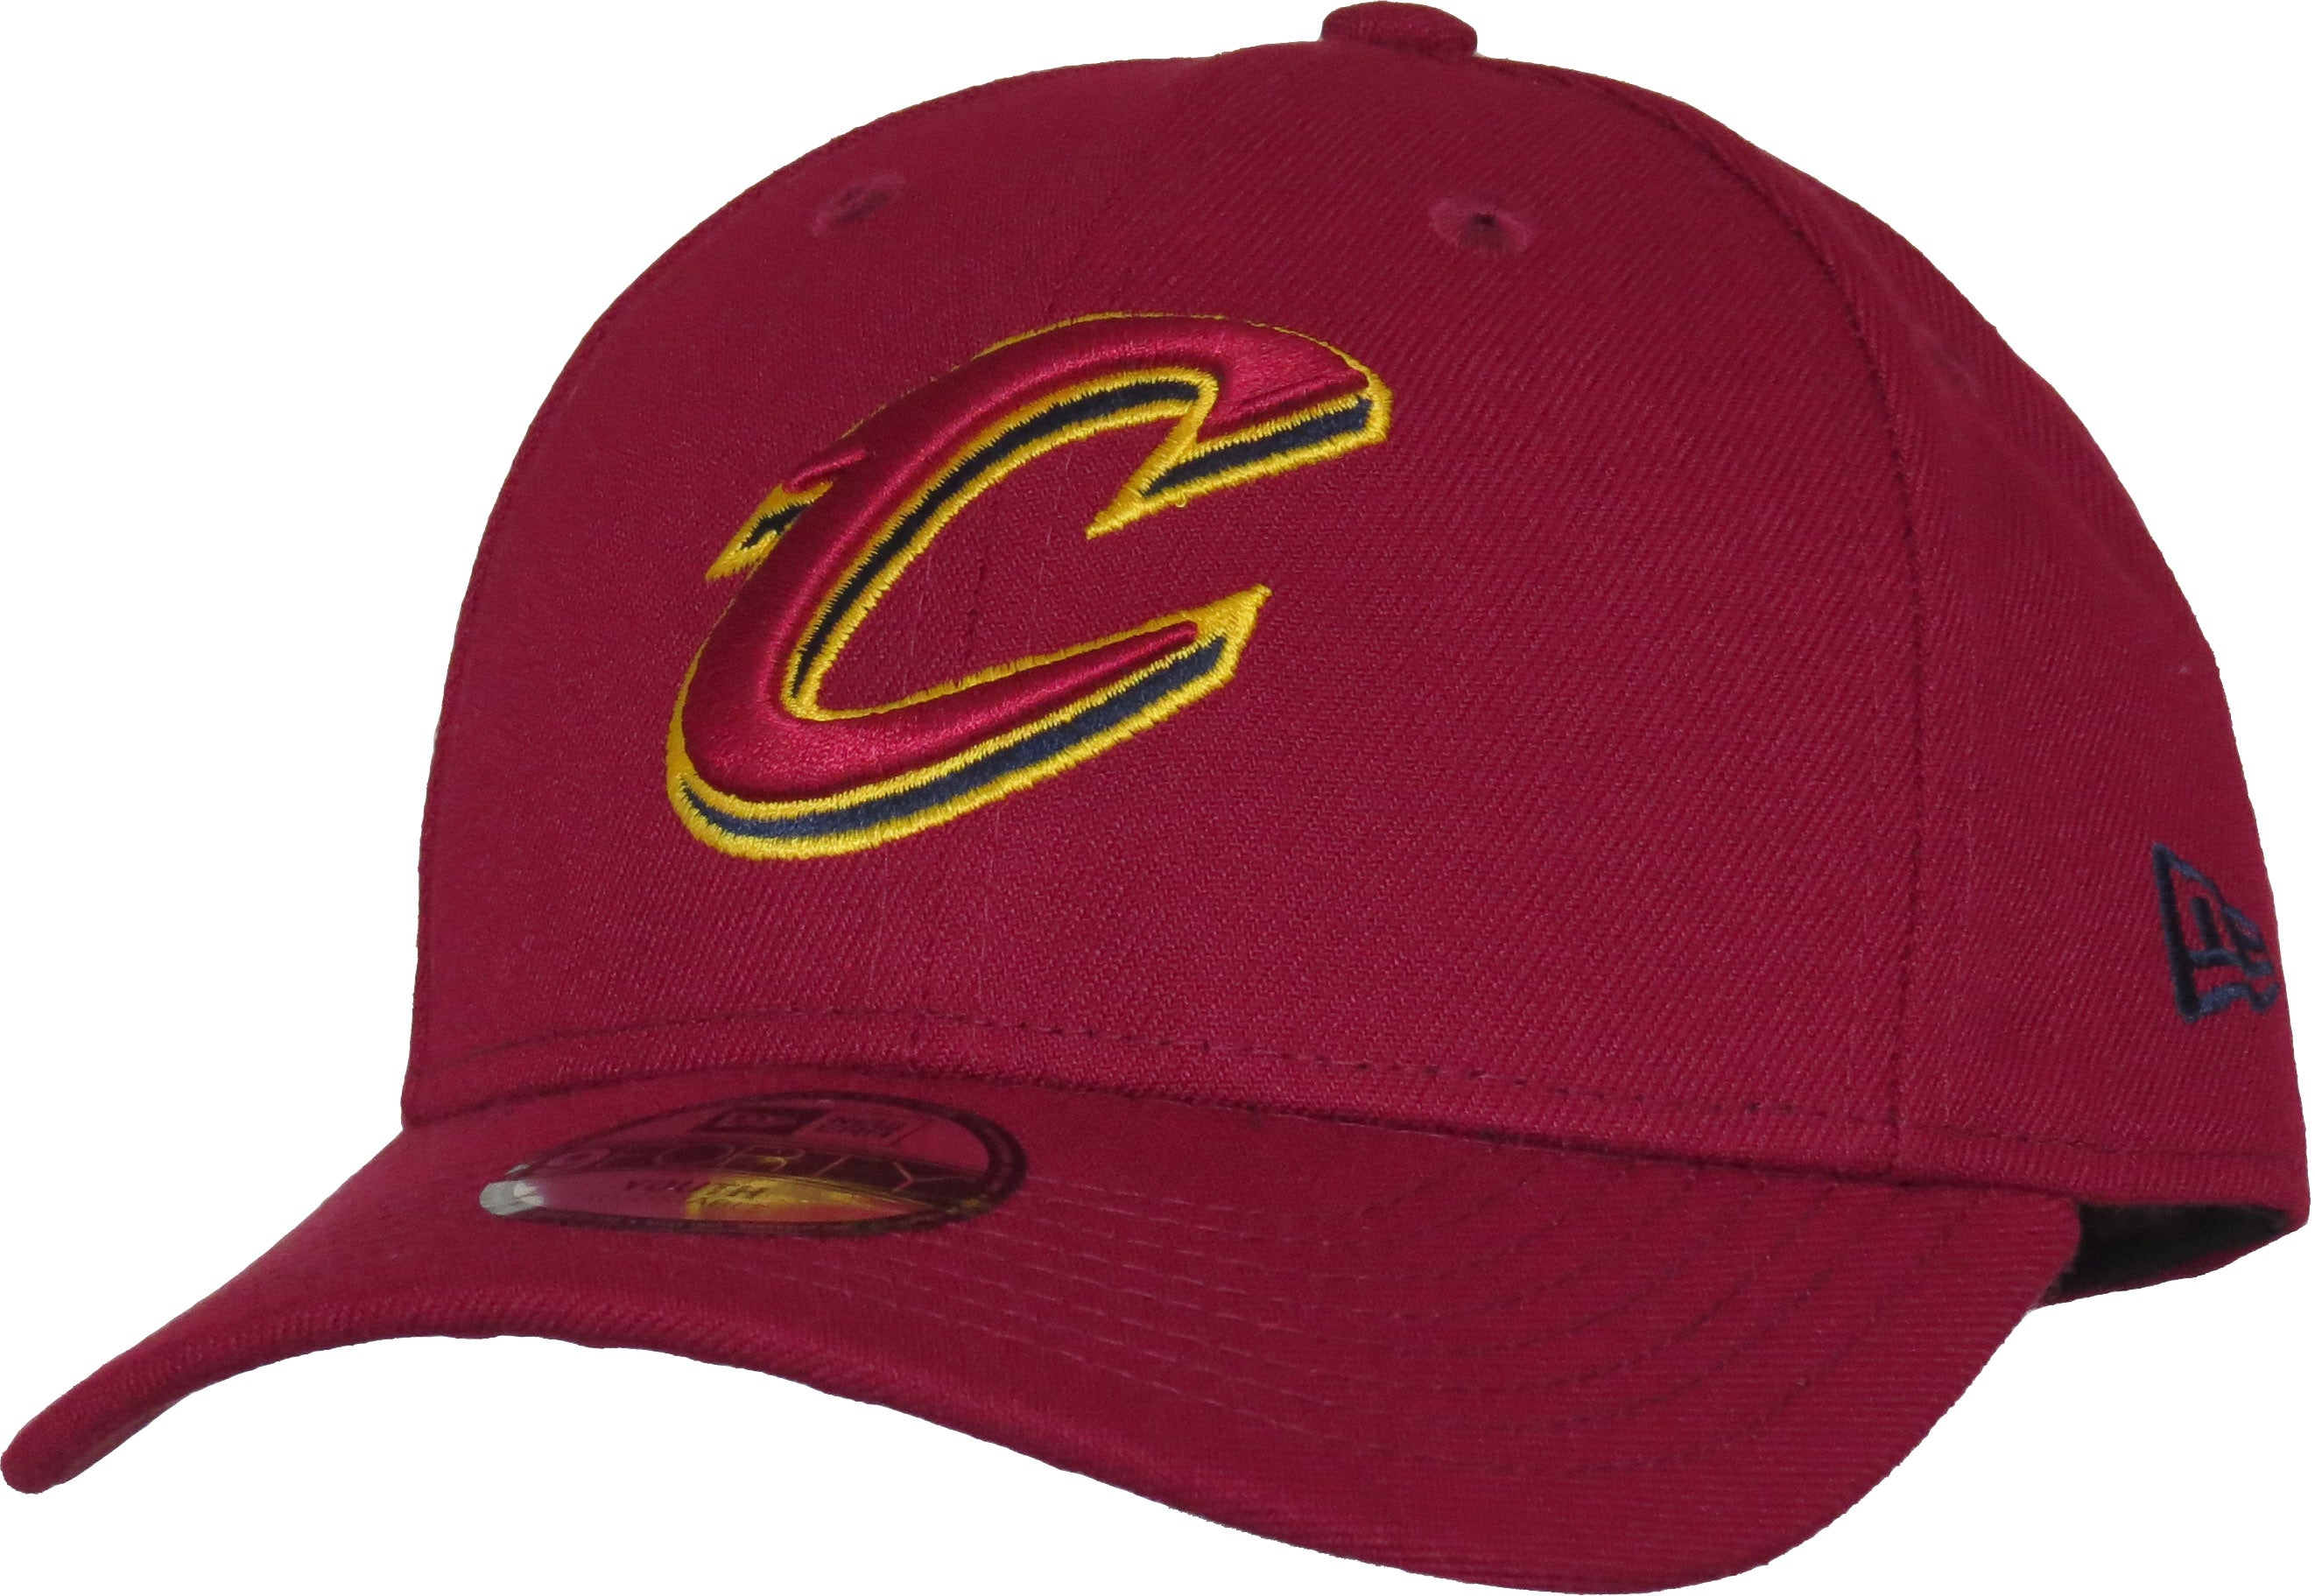 4861ee567d4 Cleveland Cavaliers Kids New Era 940 NBA The League Cap (Age 5 - 10 years  ...